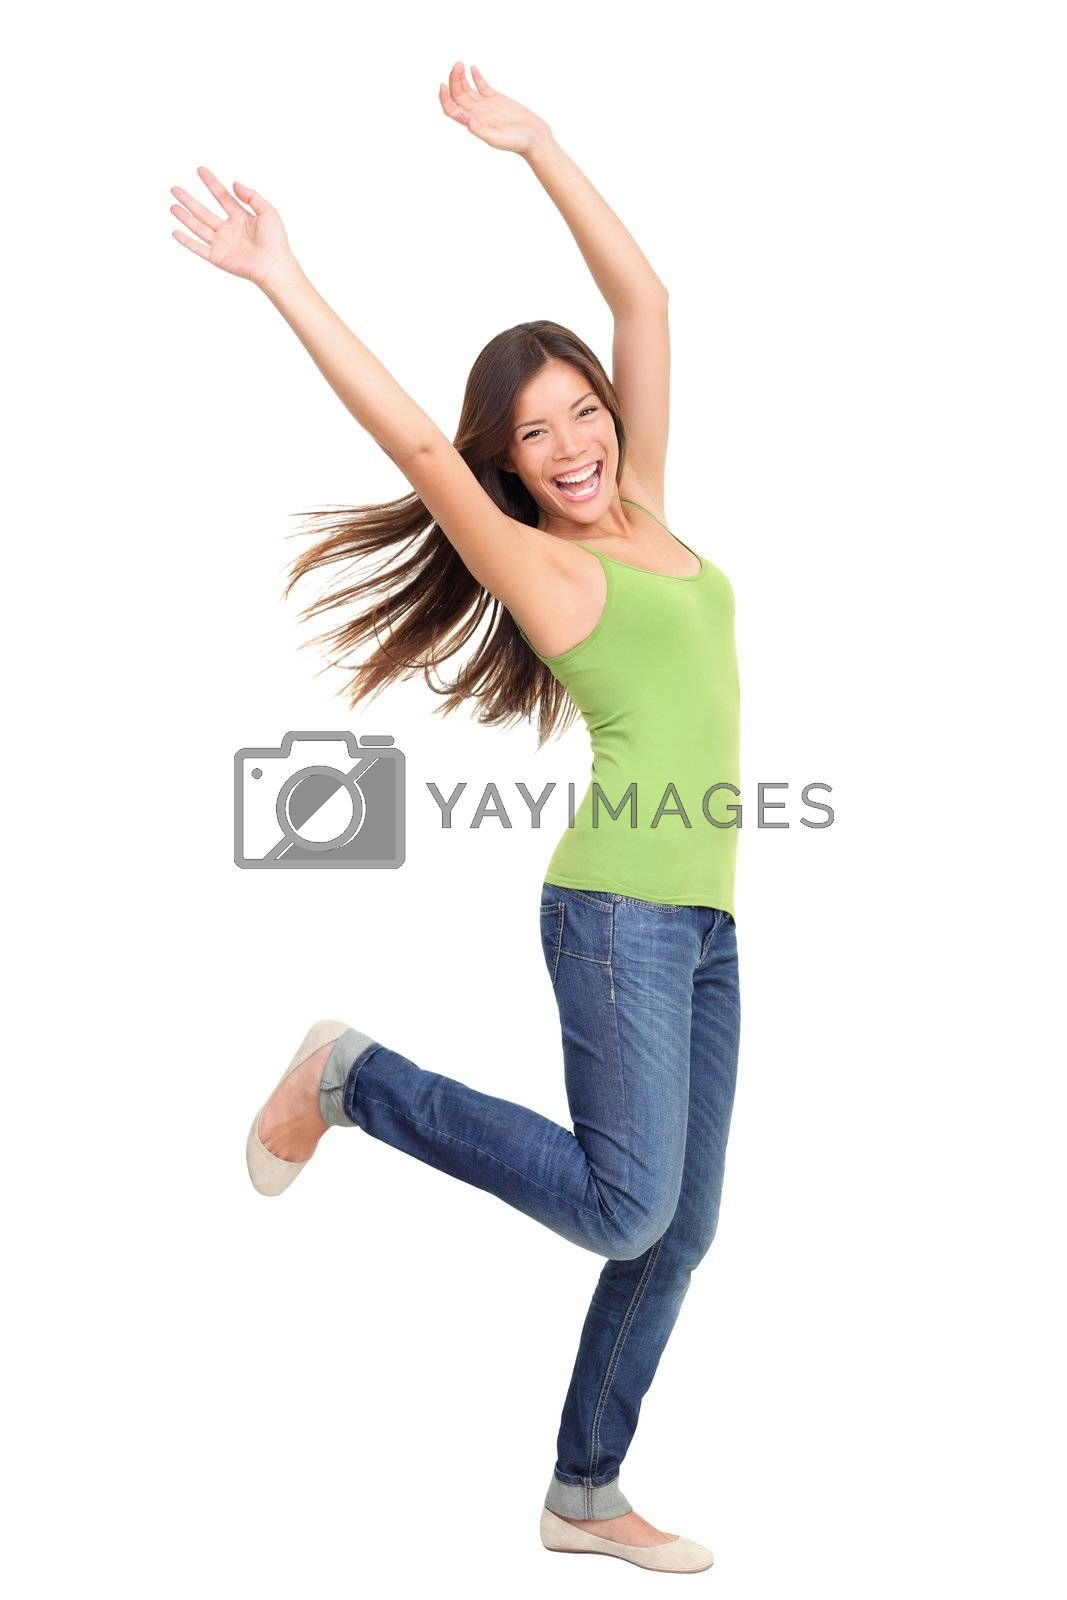 Success woman dancing and celebrating standing in full length isolated on white background. Natural beauty having fun. Mixed-race Asian Chinese / white Caucasian female model.